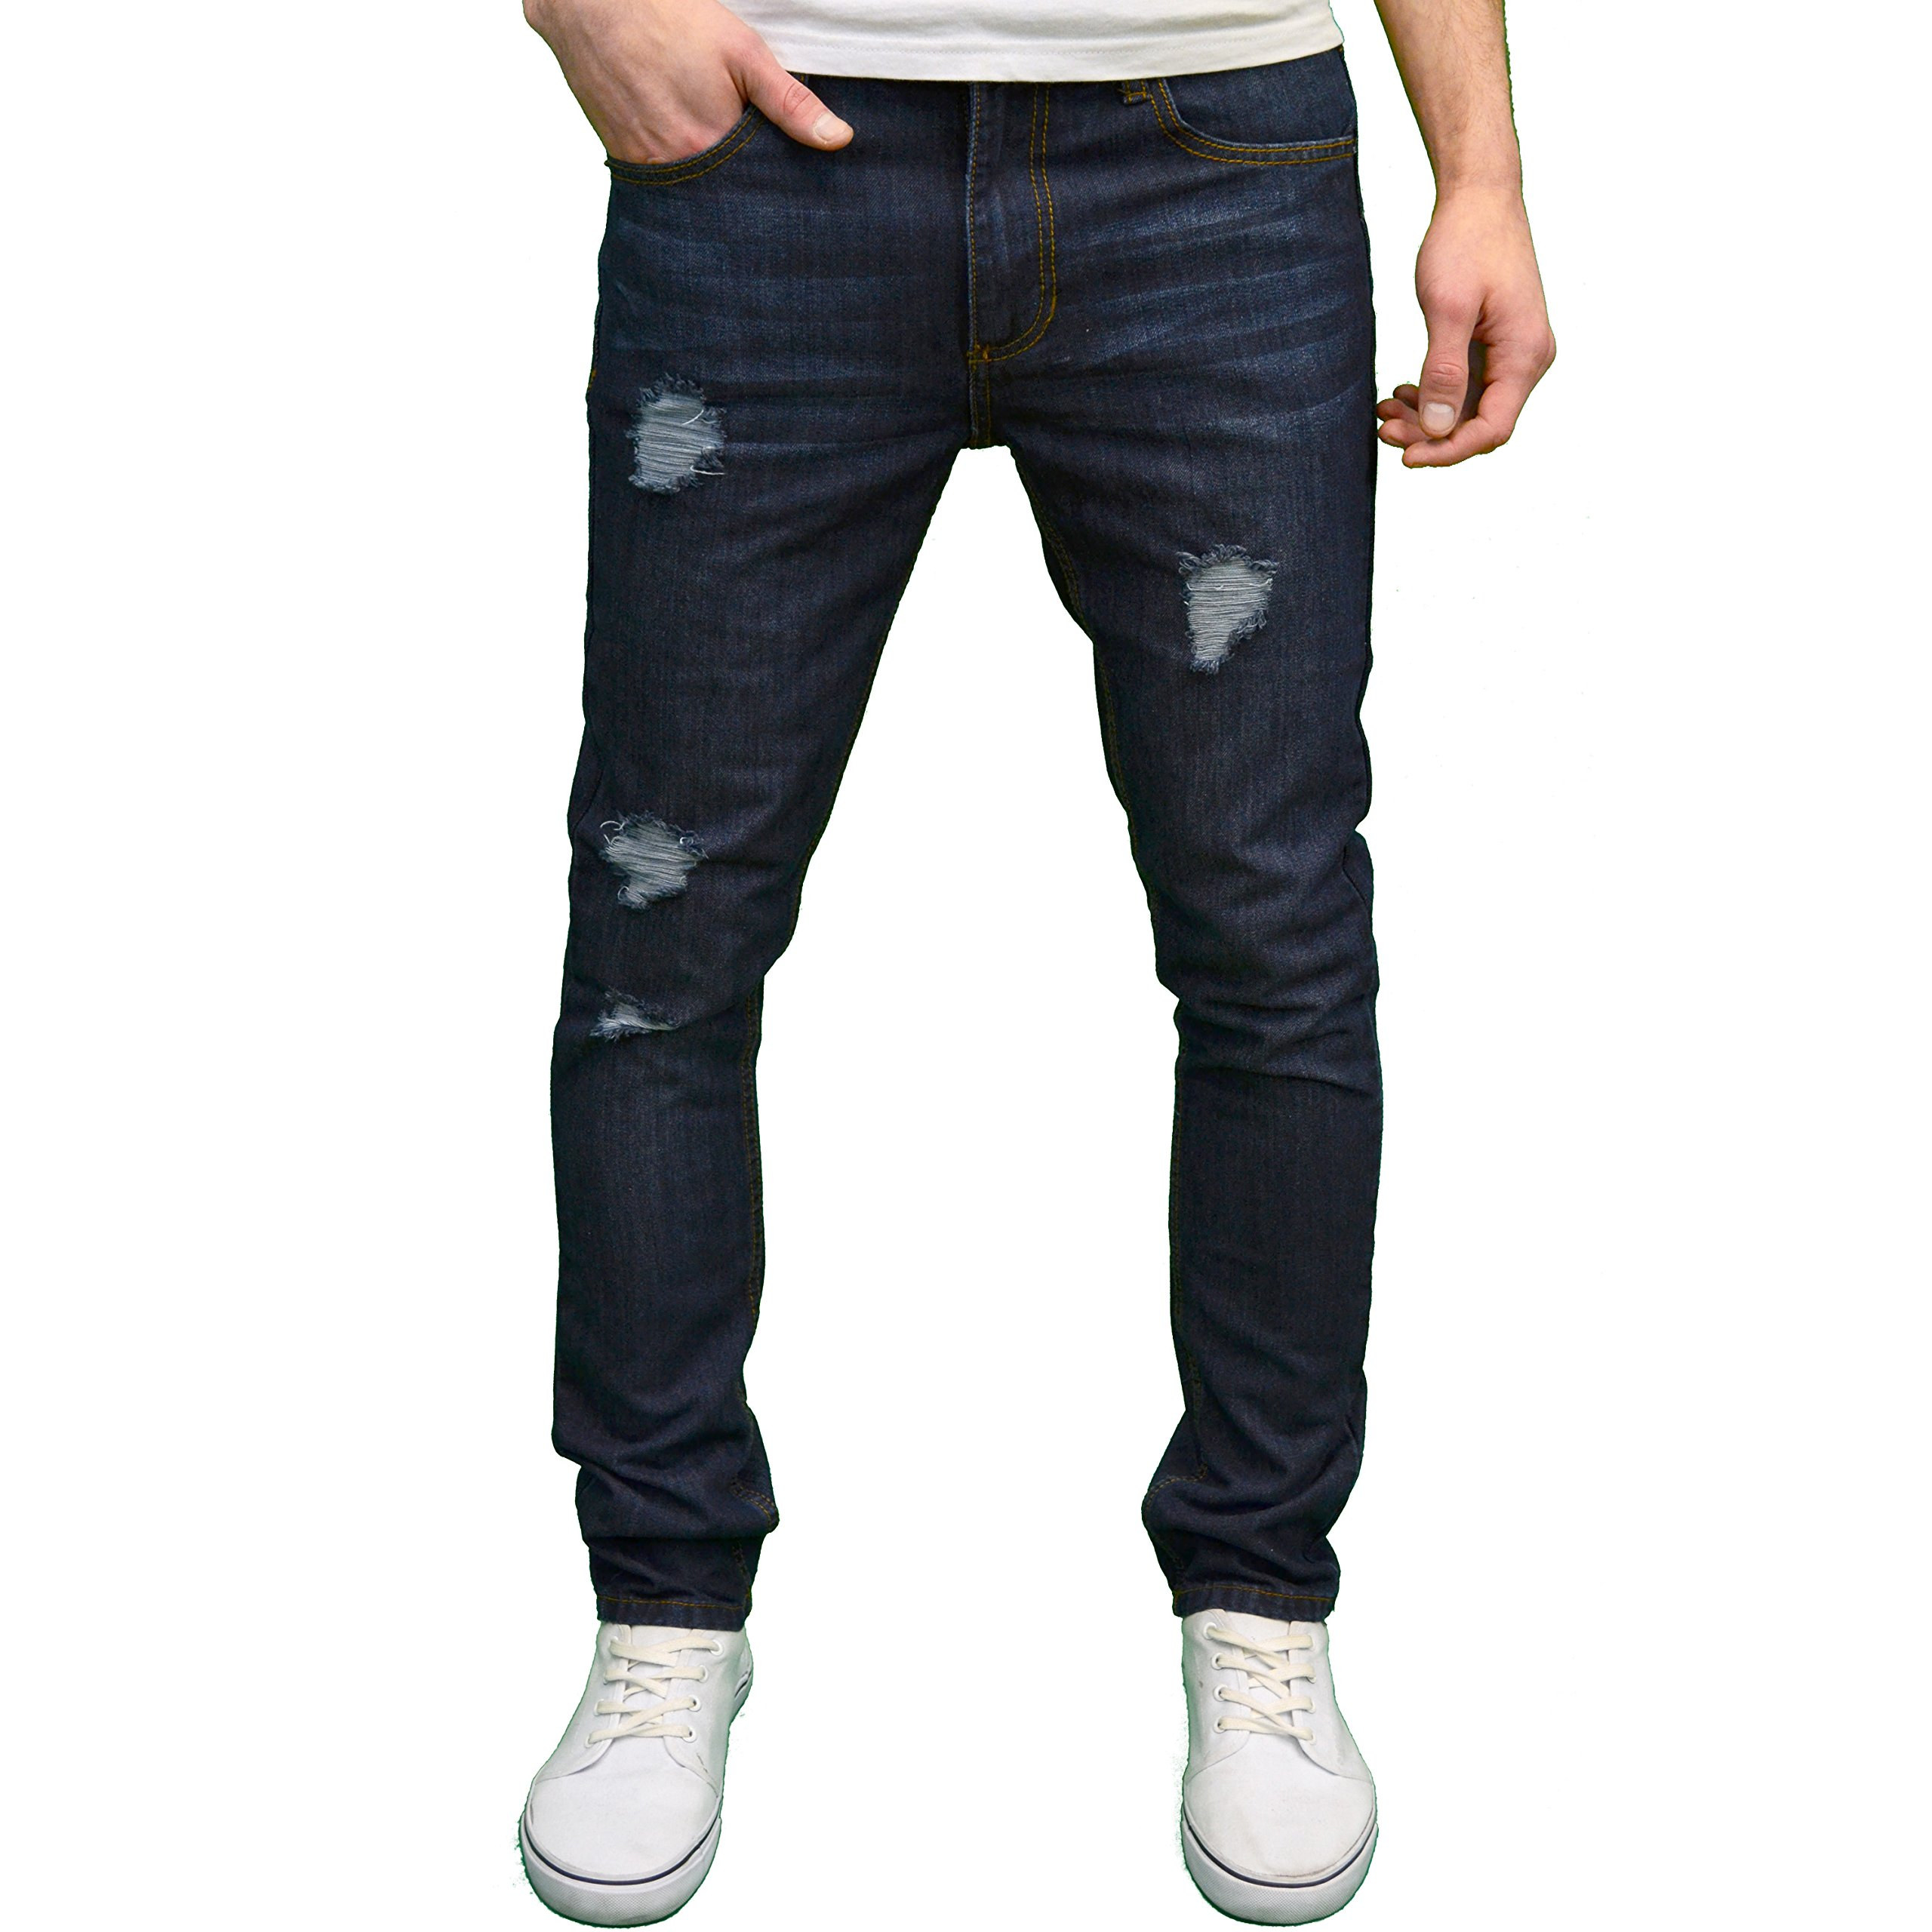 SOULSTAR Mens Designer Ripped Straight Leg Slim Fit Jeans, Available In 4 Colours (36W x 30L, Dark Blue)